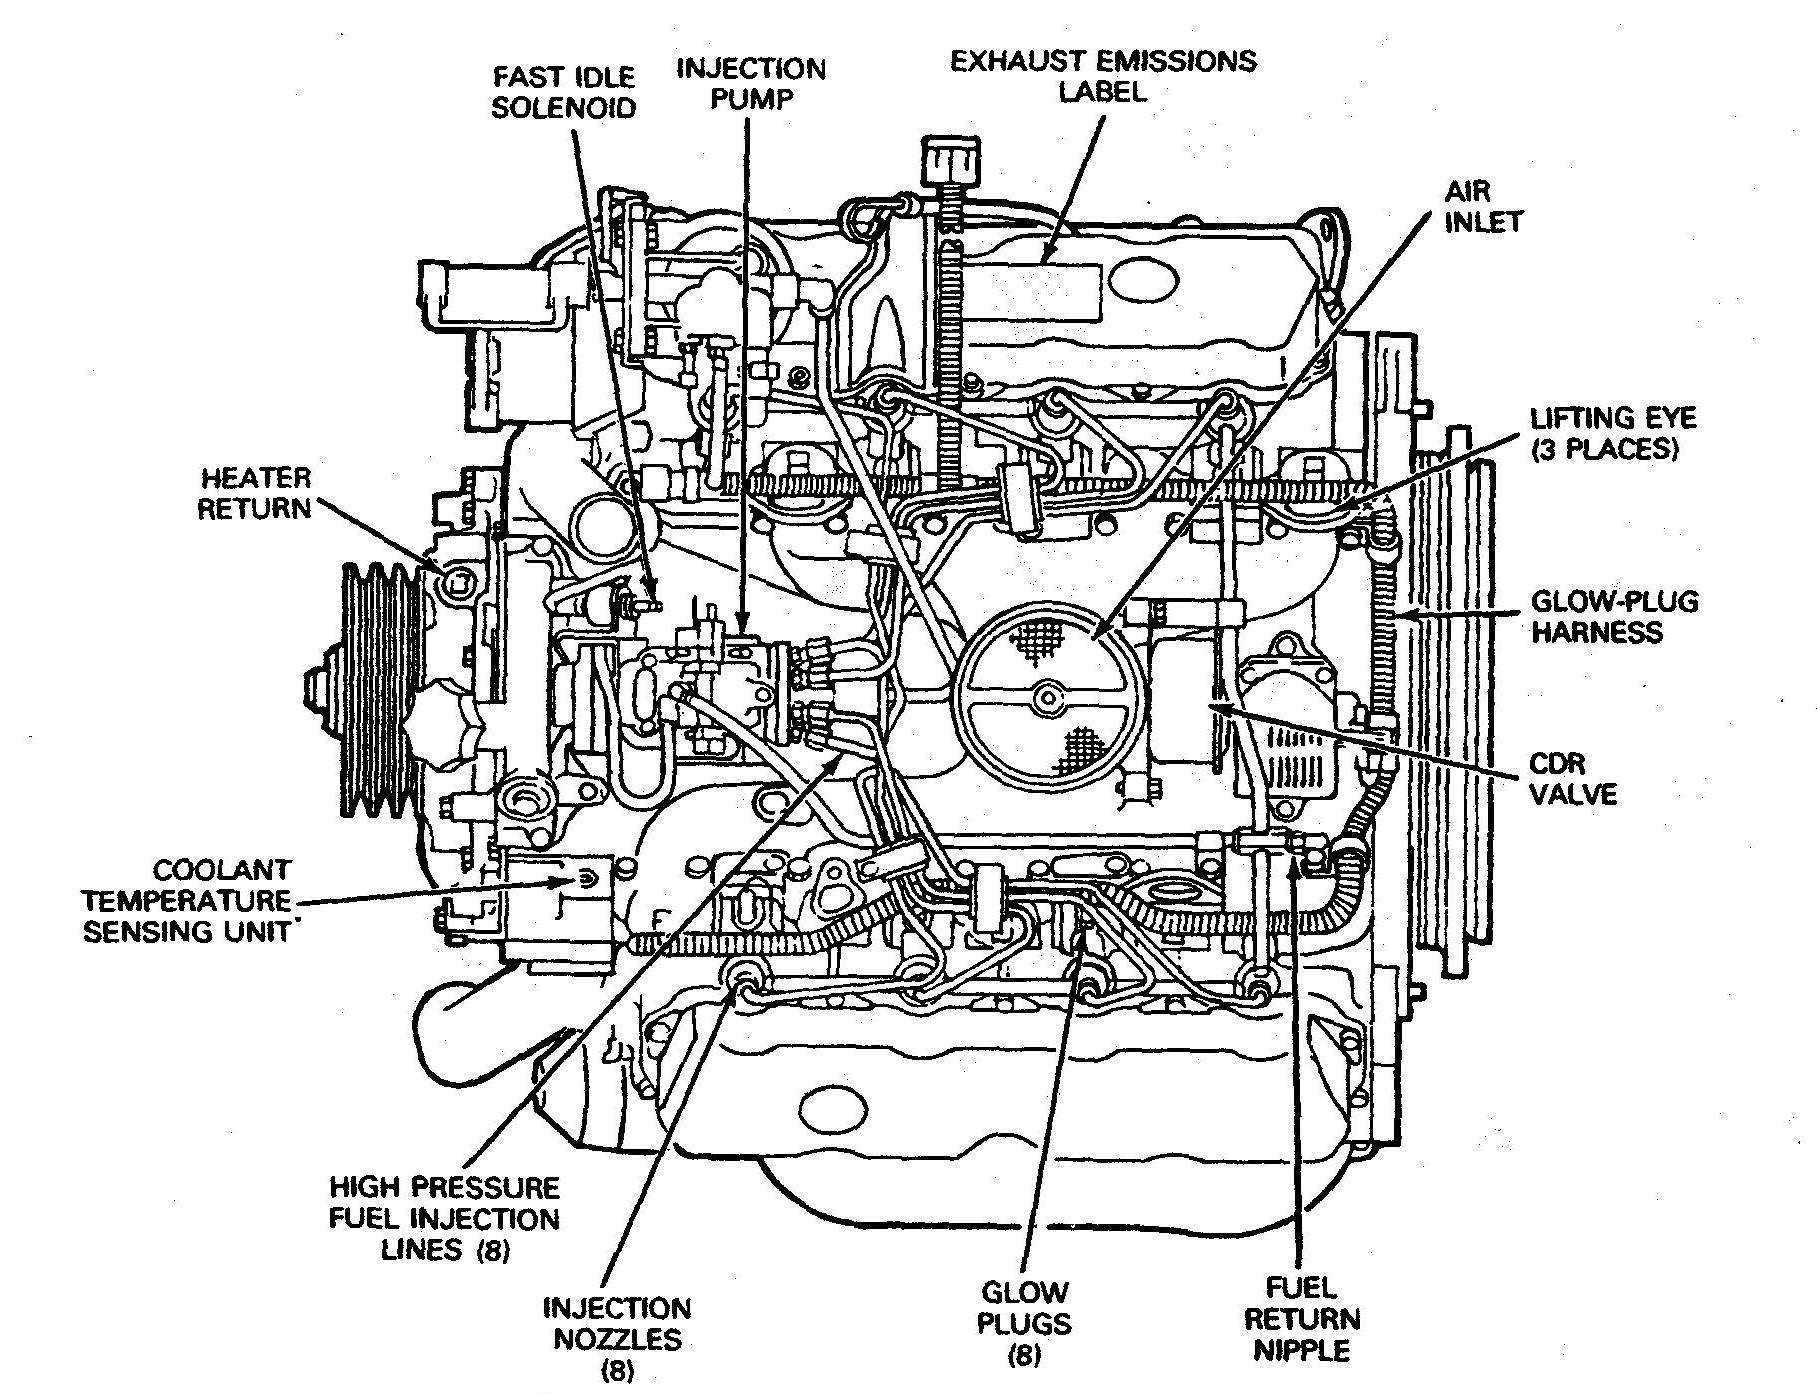 V8 Car Engine Diagram Plete Car Engine Diagram Wiring Wiring Diagrams Instructions Of V8 Car Engine Diagram